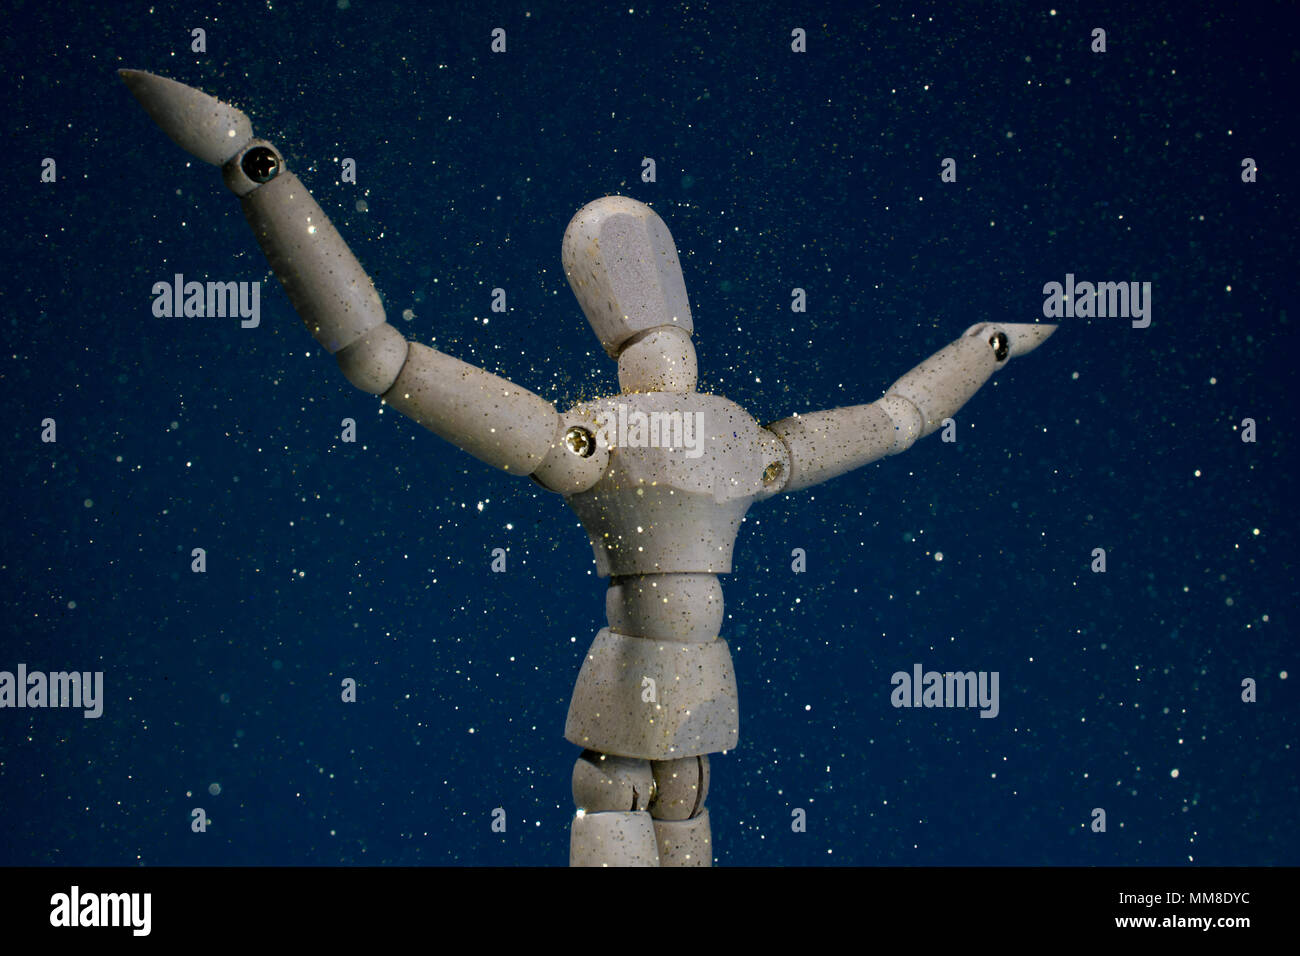 Mannequin figurine standing in gold rain with arms outstretched - Stock Image